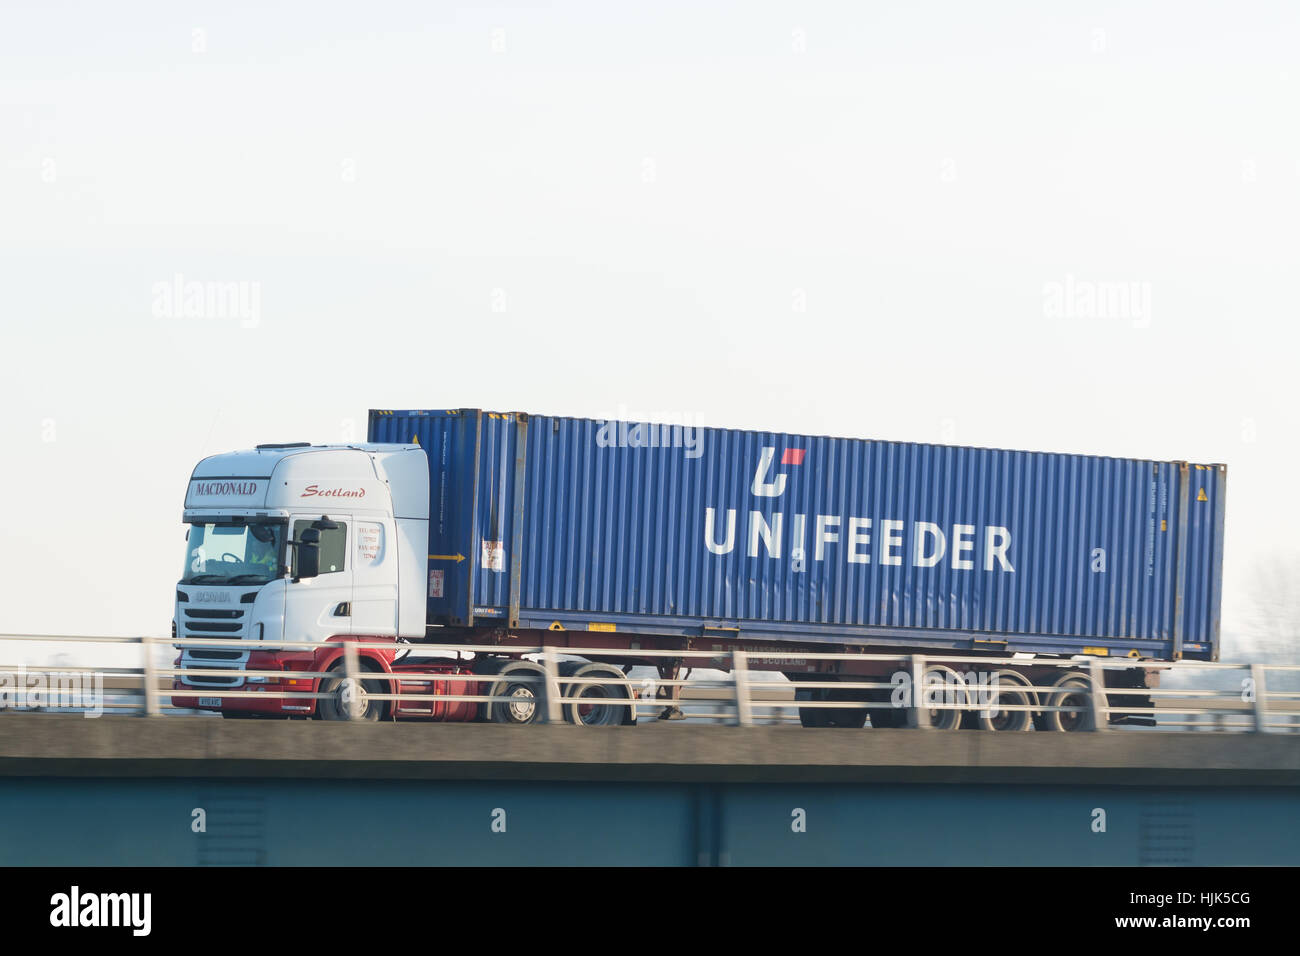 Unifeeder shipping container on lorry - Scotland, UK - Stock Image